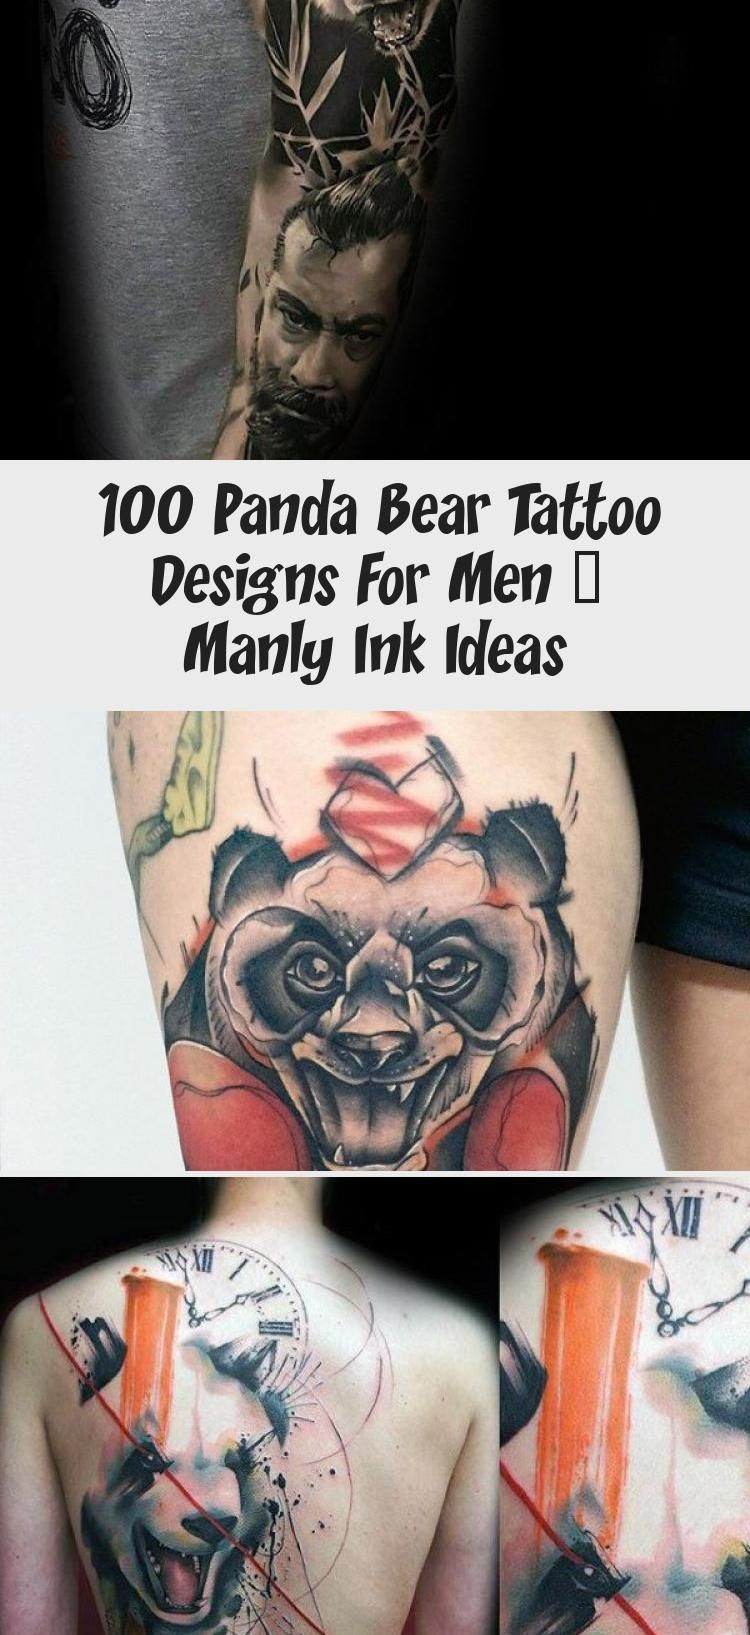 100 Panda Bear Tattoo Designs For Men – Manly Ink Ideas ... - photo#34